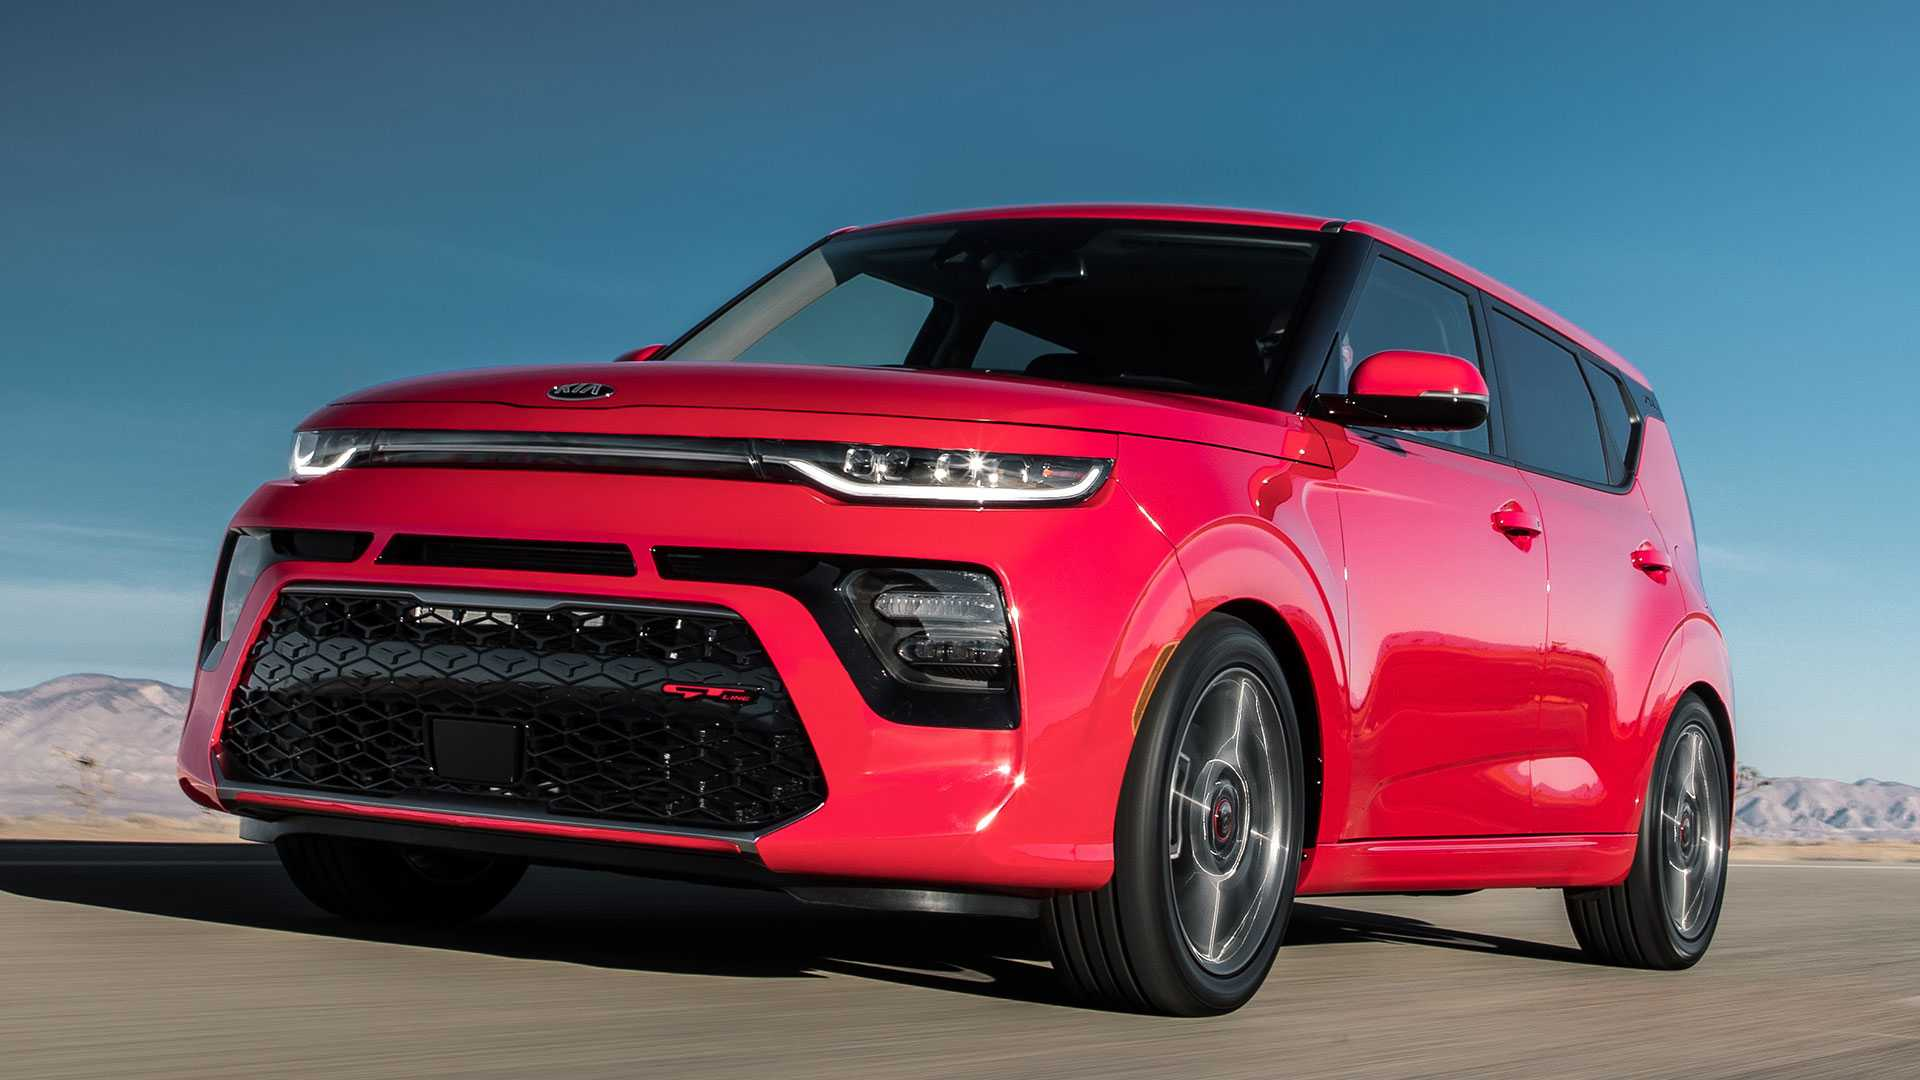 31 The Best 2020 Kia Soul Gt Turbo Exterior